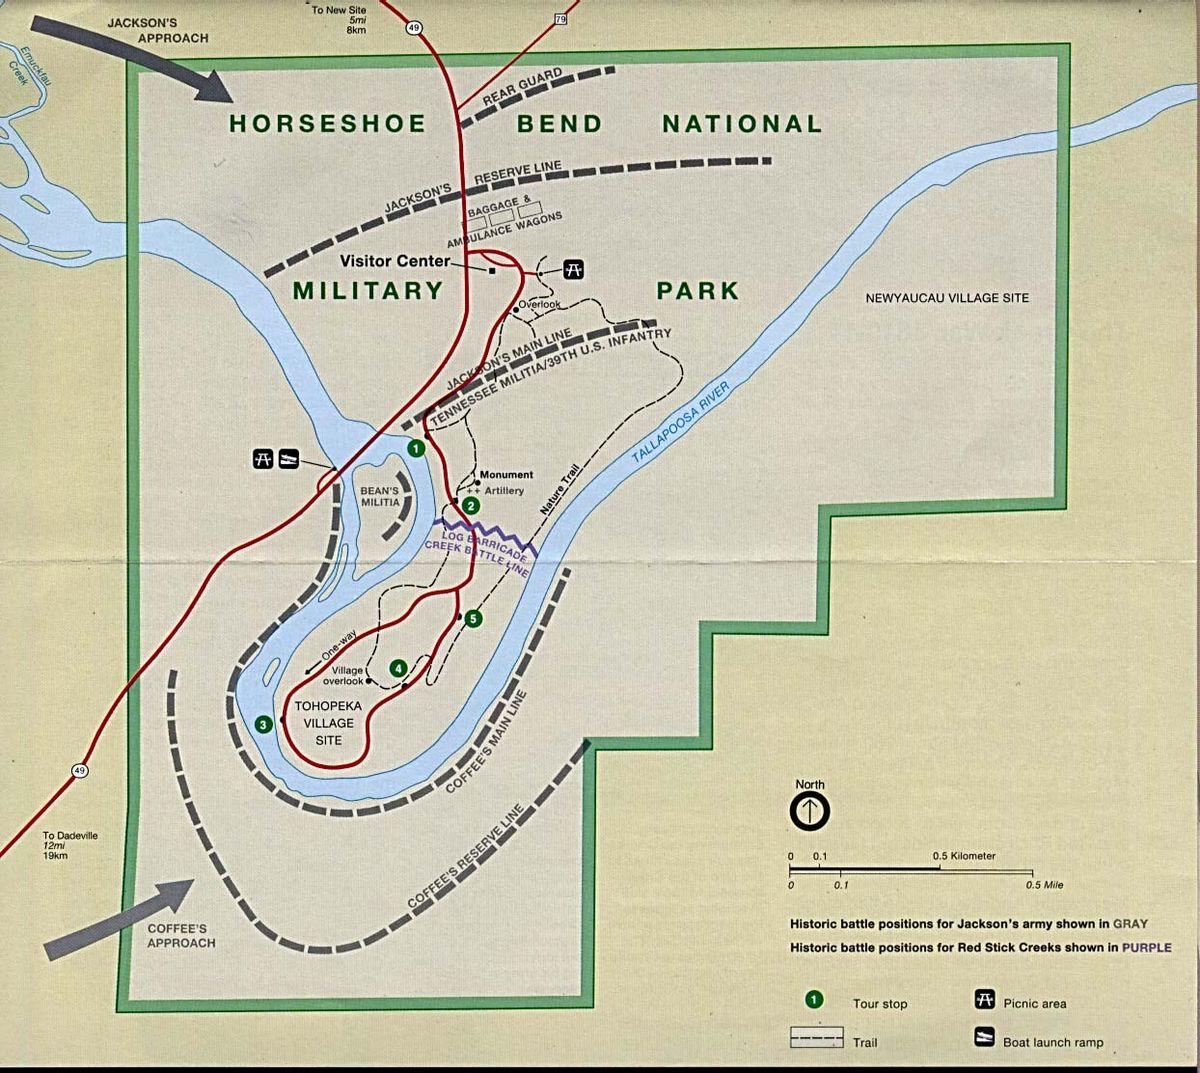 Horseshoe Bend National Military Park – Travel guide at